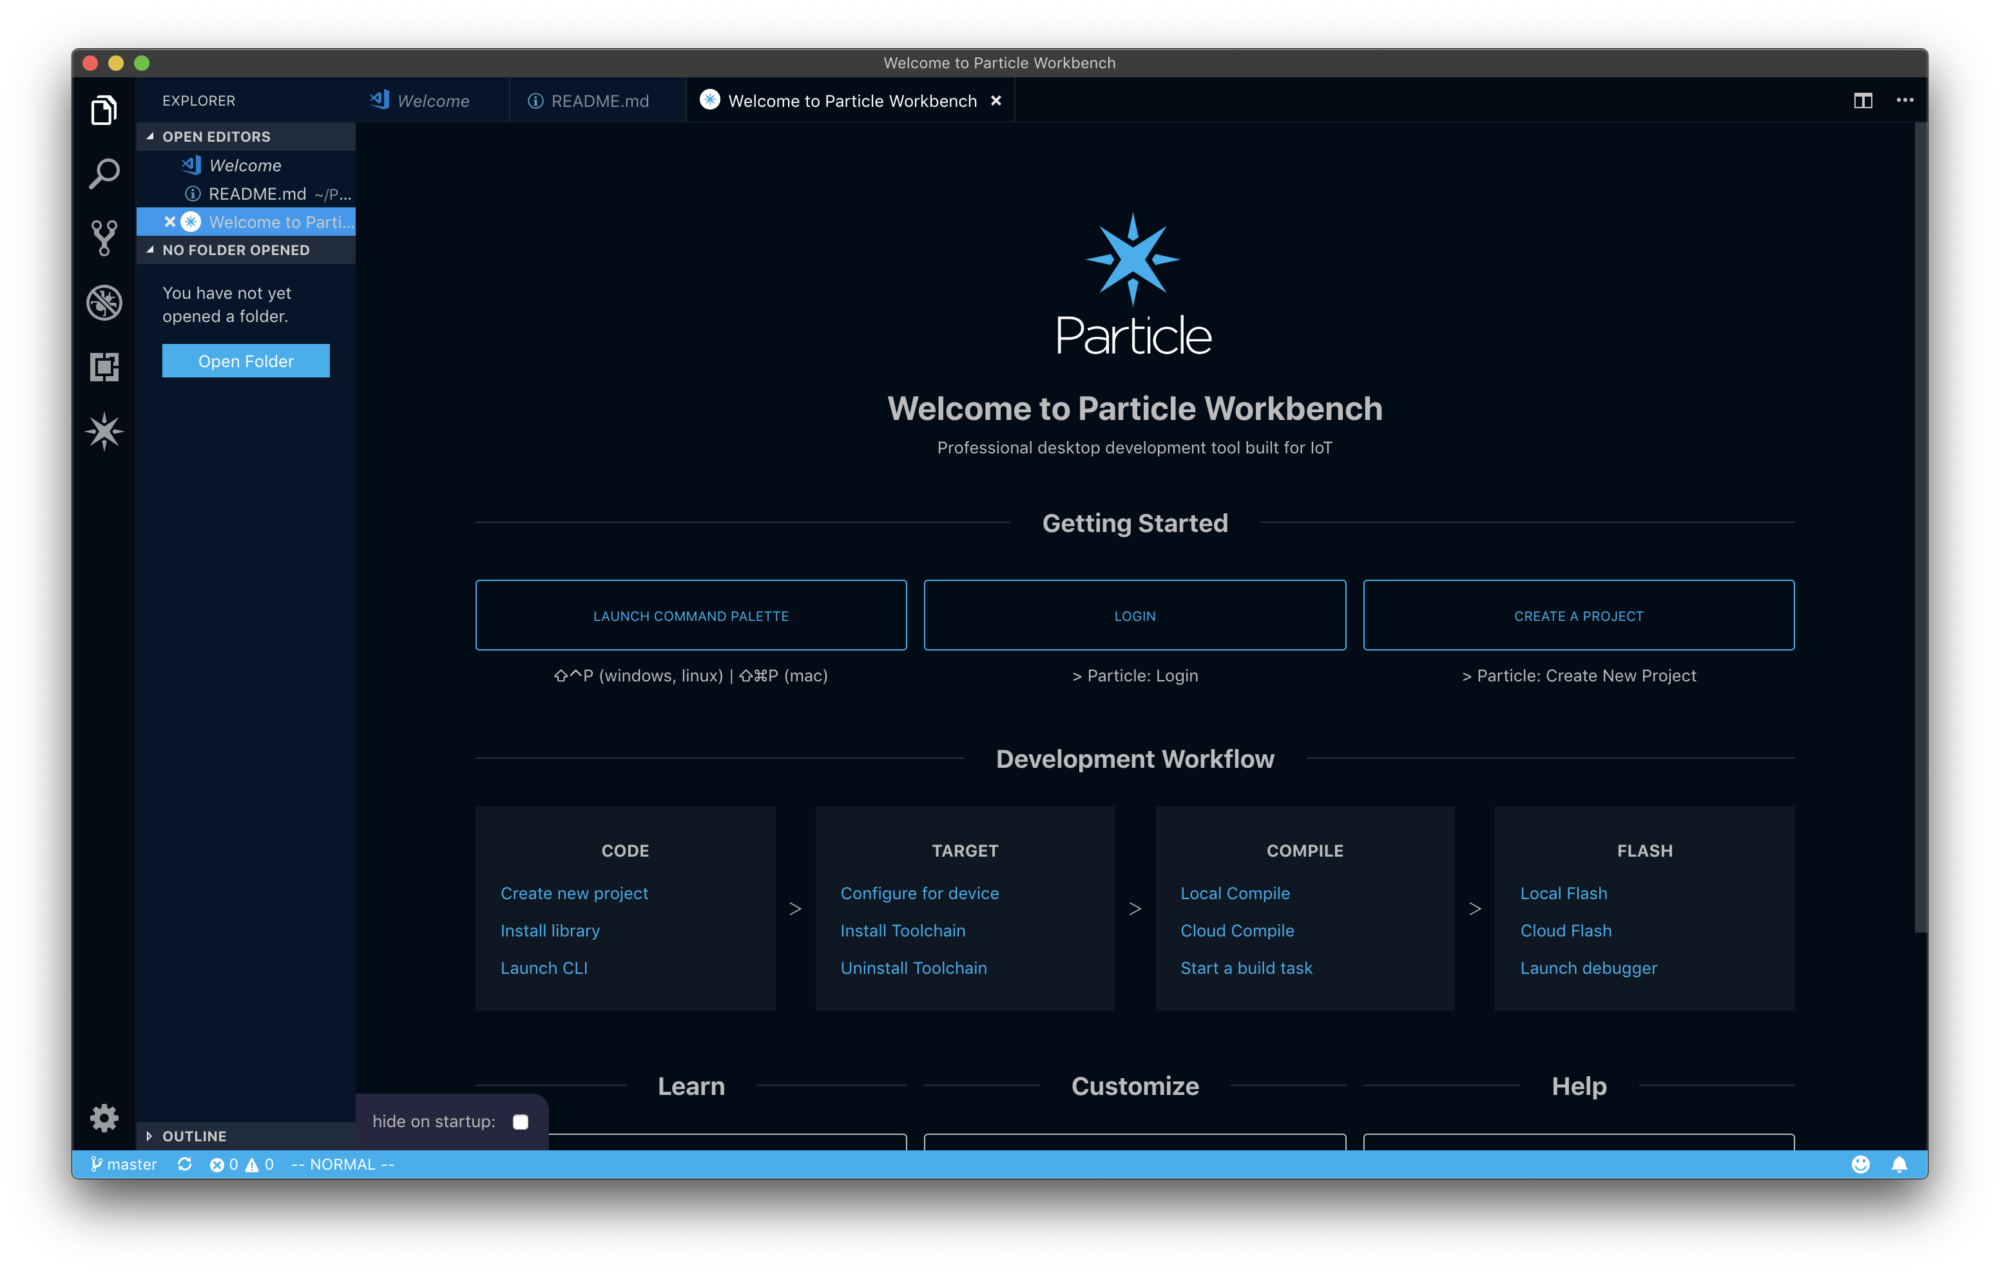 Image of the Particle Workbench welcome screen.